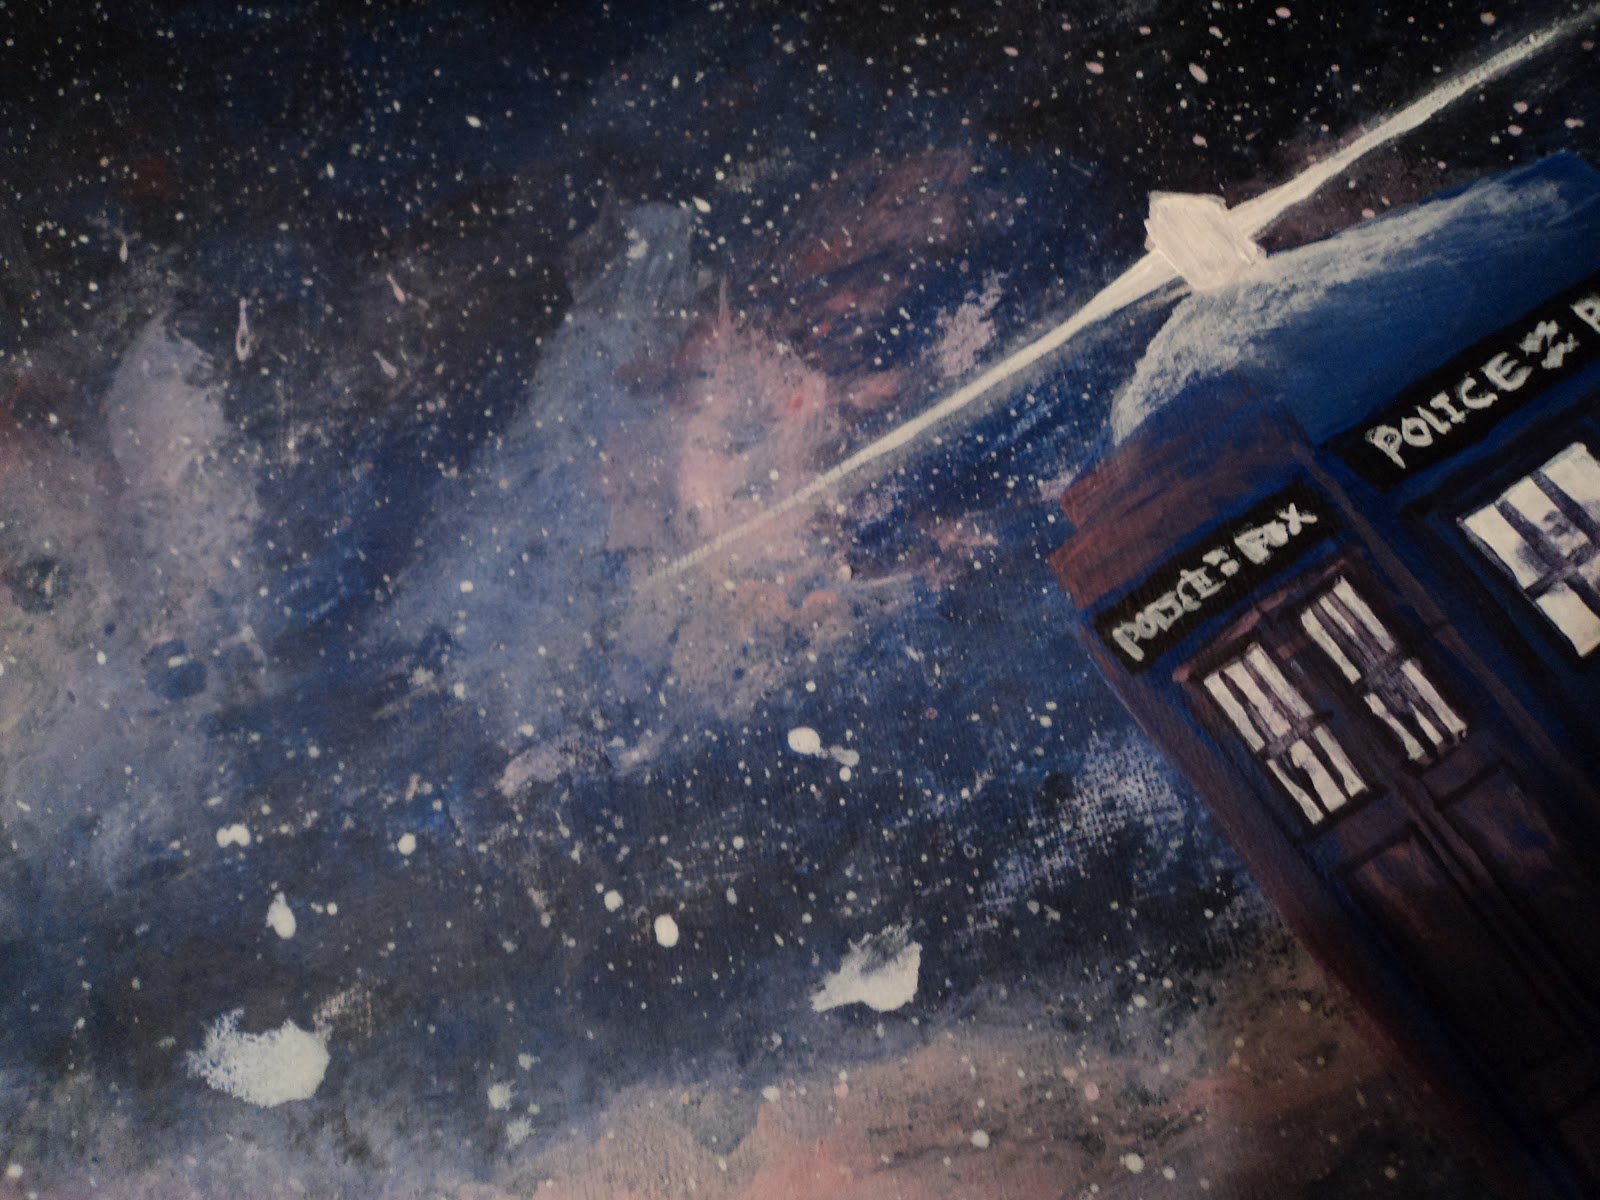 Elenatintil: A Painting of a TARDIS